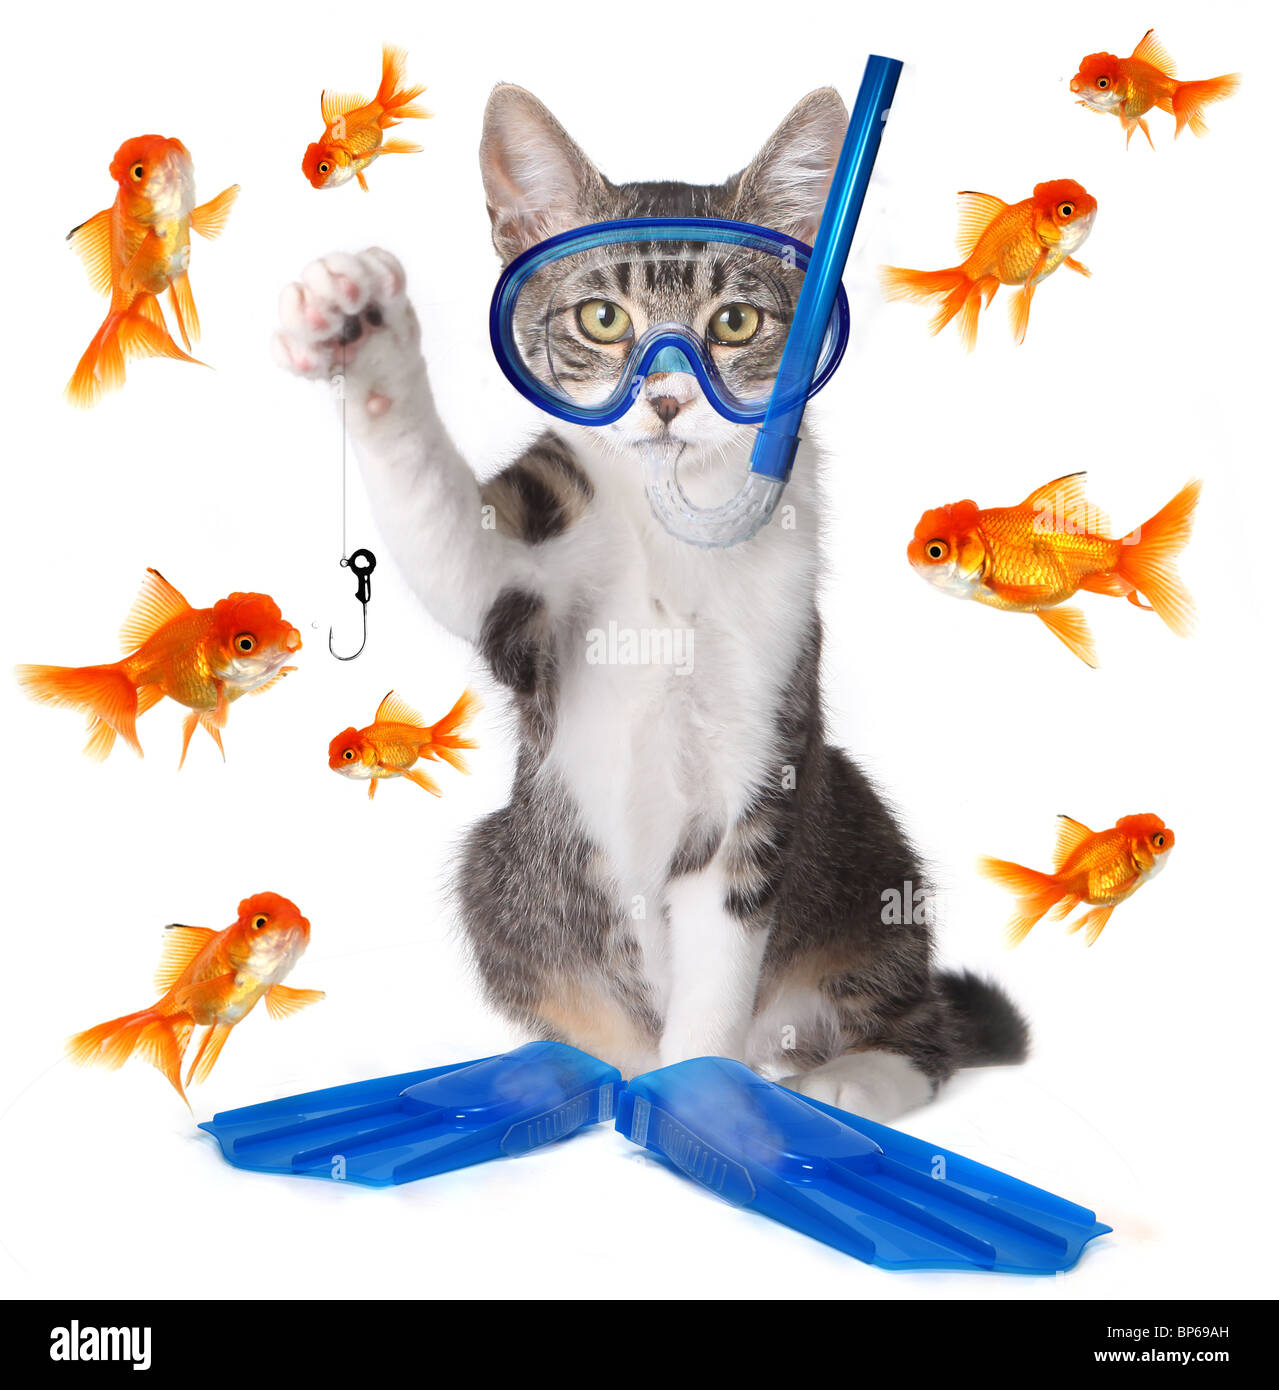 Modern Spin on the Term Fishing to be Analogous with Phishing in the New Age of Technology - Stock Image